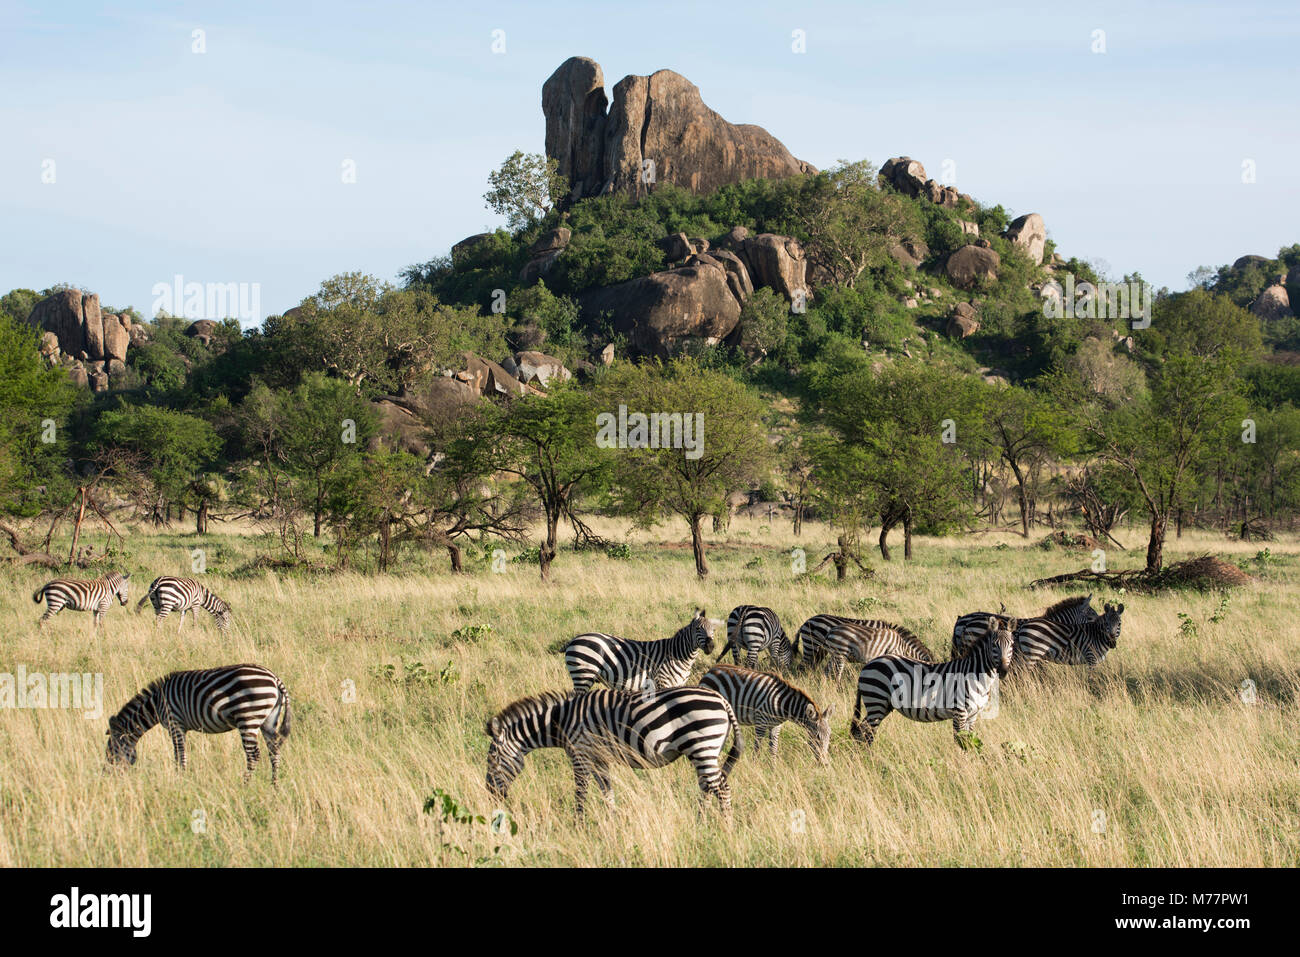 Burchells zebra (Equus burchelli) near a kopjes, in Serengeti National Park, UNESCO World Heritage Site, Tanzania, - Stock Image